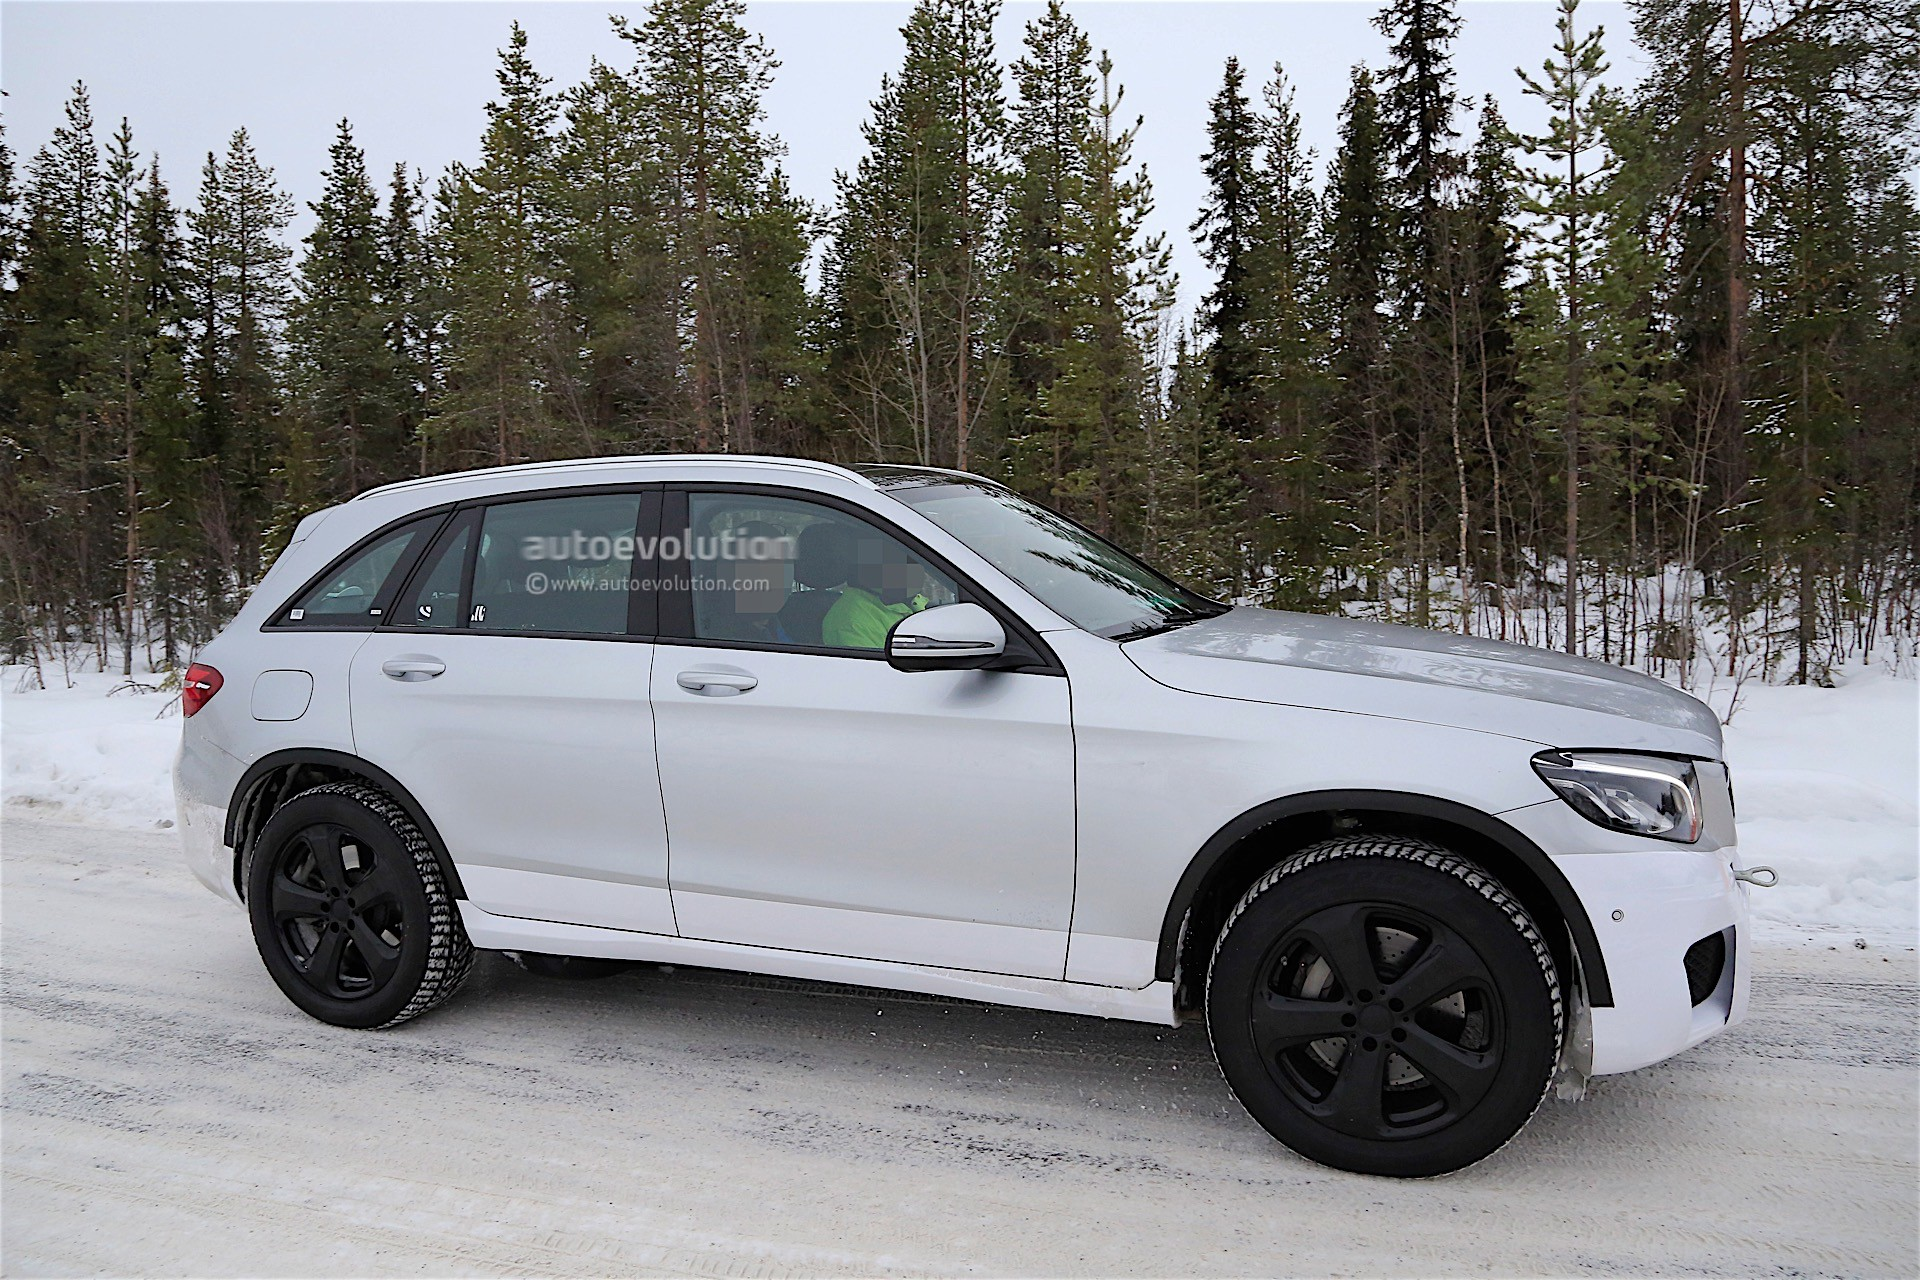 Top 3 Expectations From The New Mercedes Benz Electric SUV